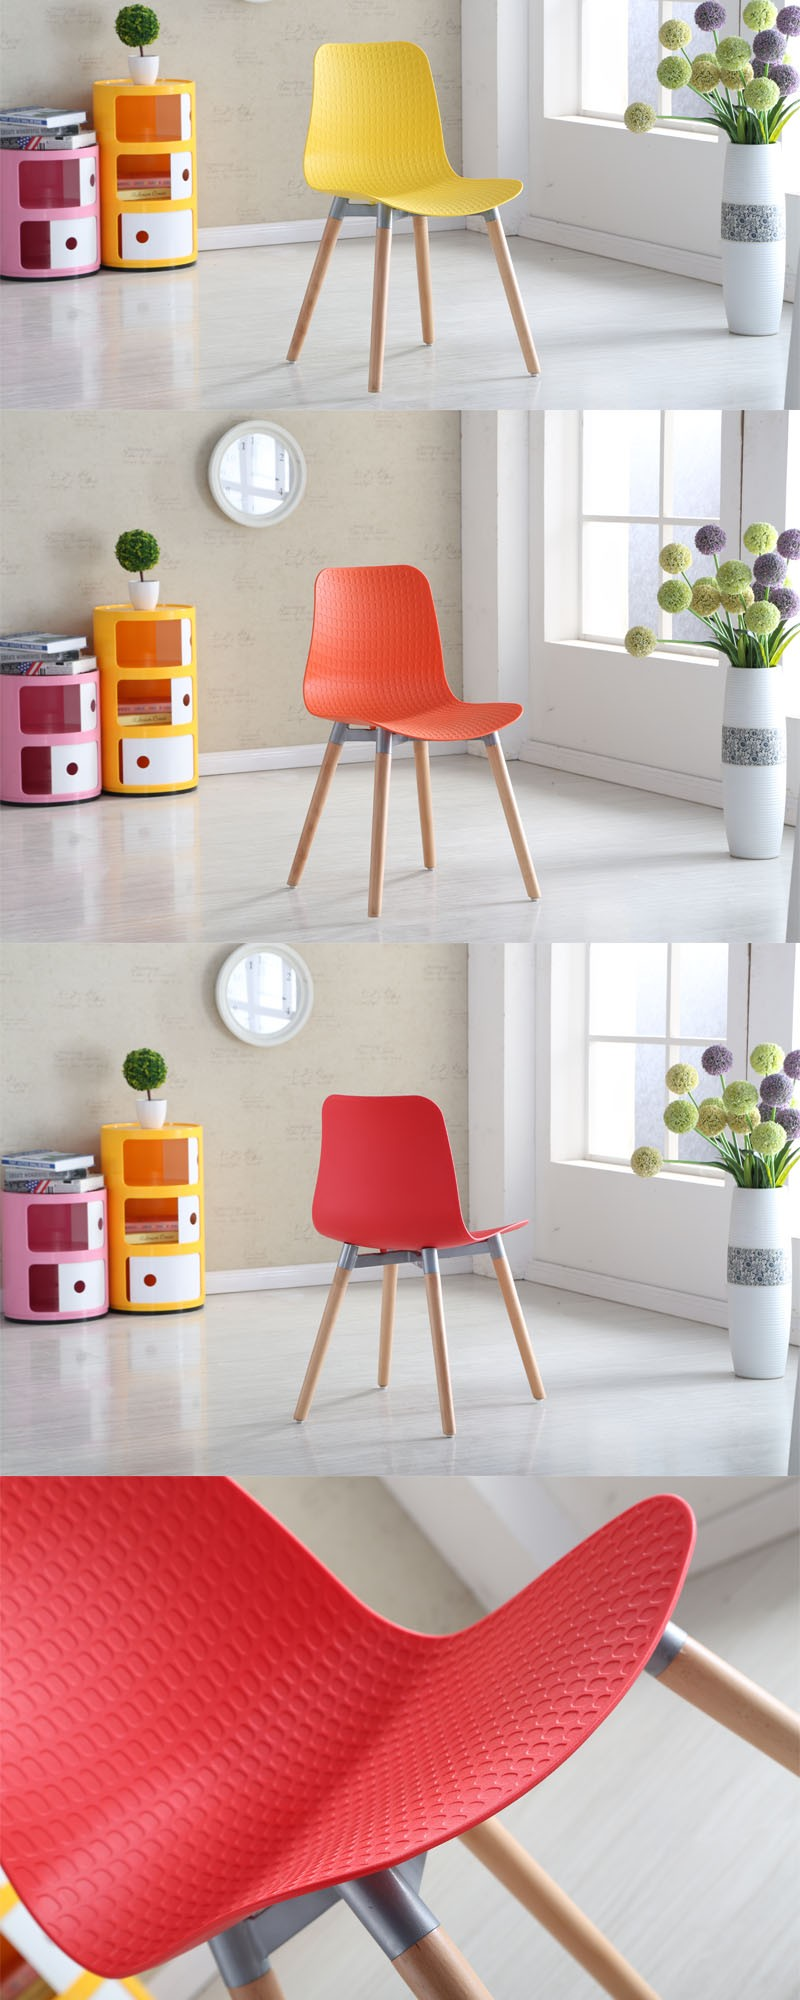 Modern Home Furniture Stock Plastic Chair.jpg